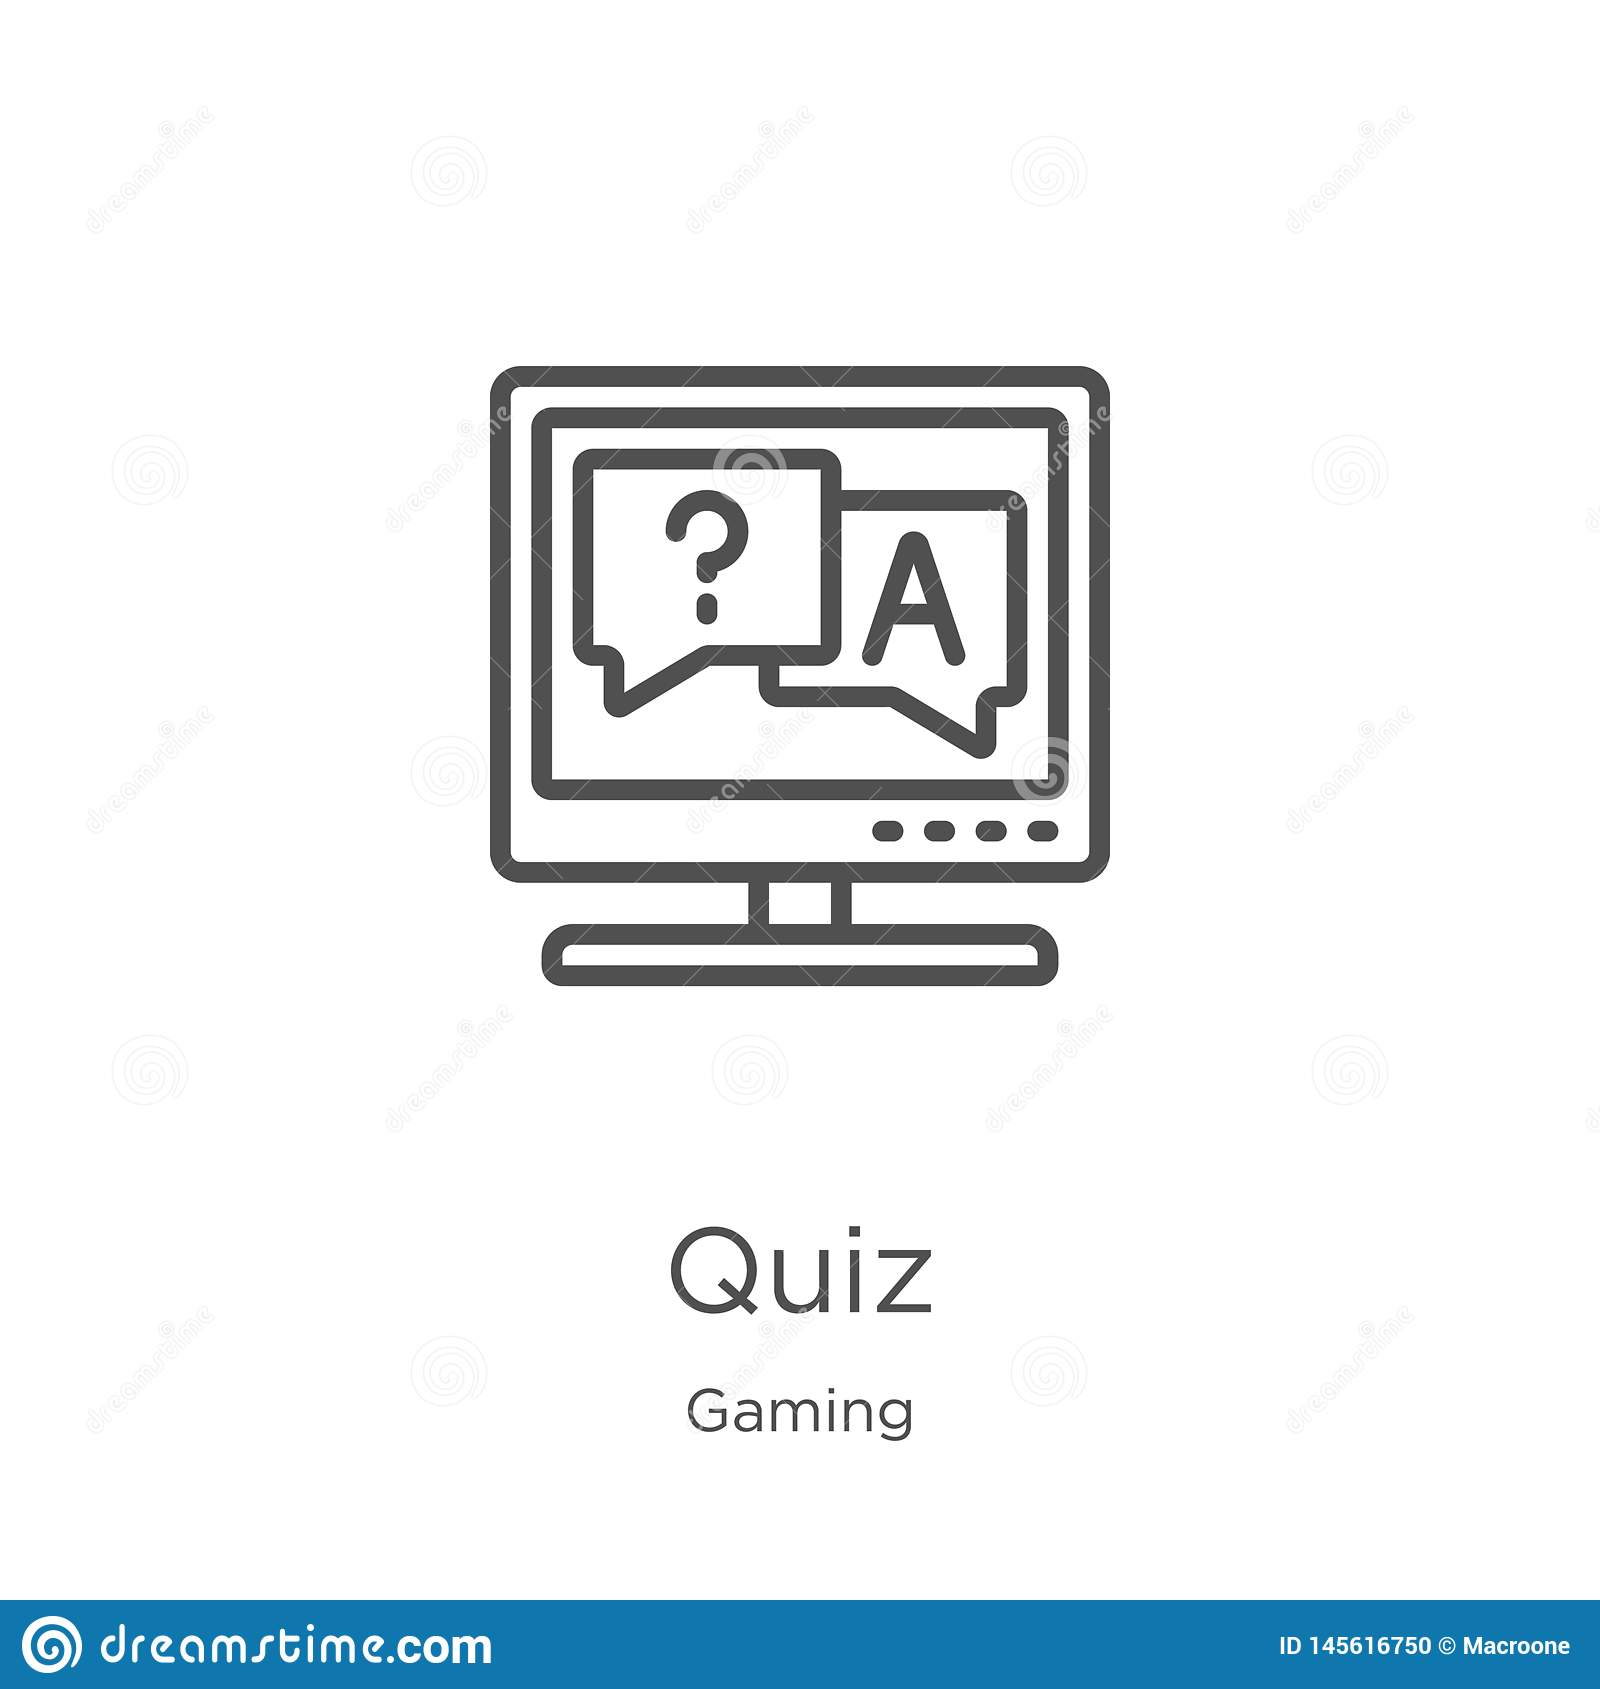 quiz icon vector from gaming collection. Thin line quiz outline icon vector illustration. Outline, thin line quiz icon for website